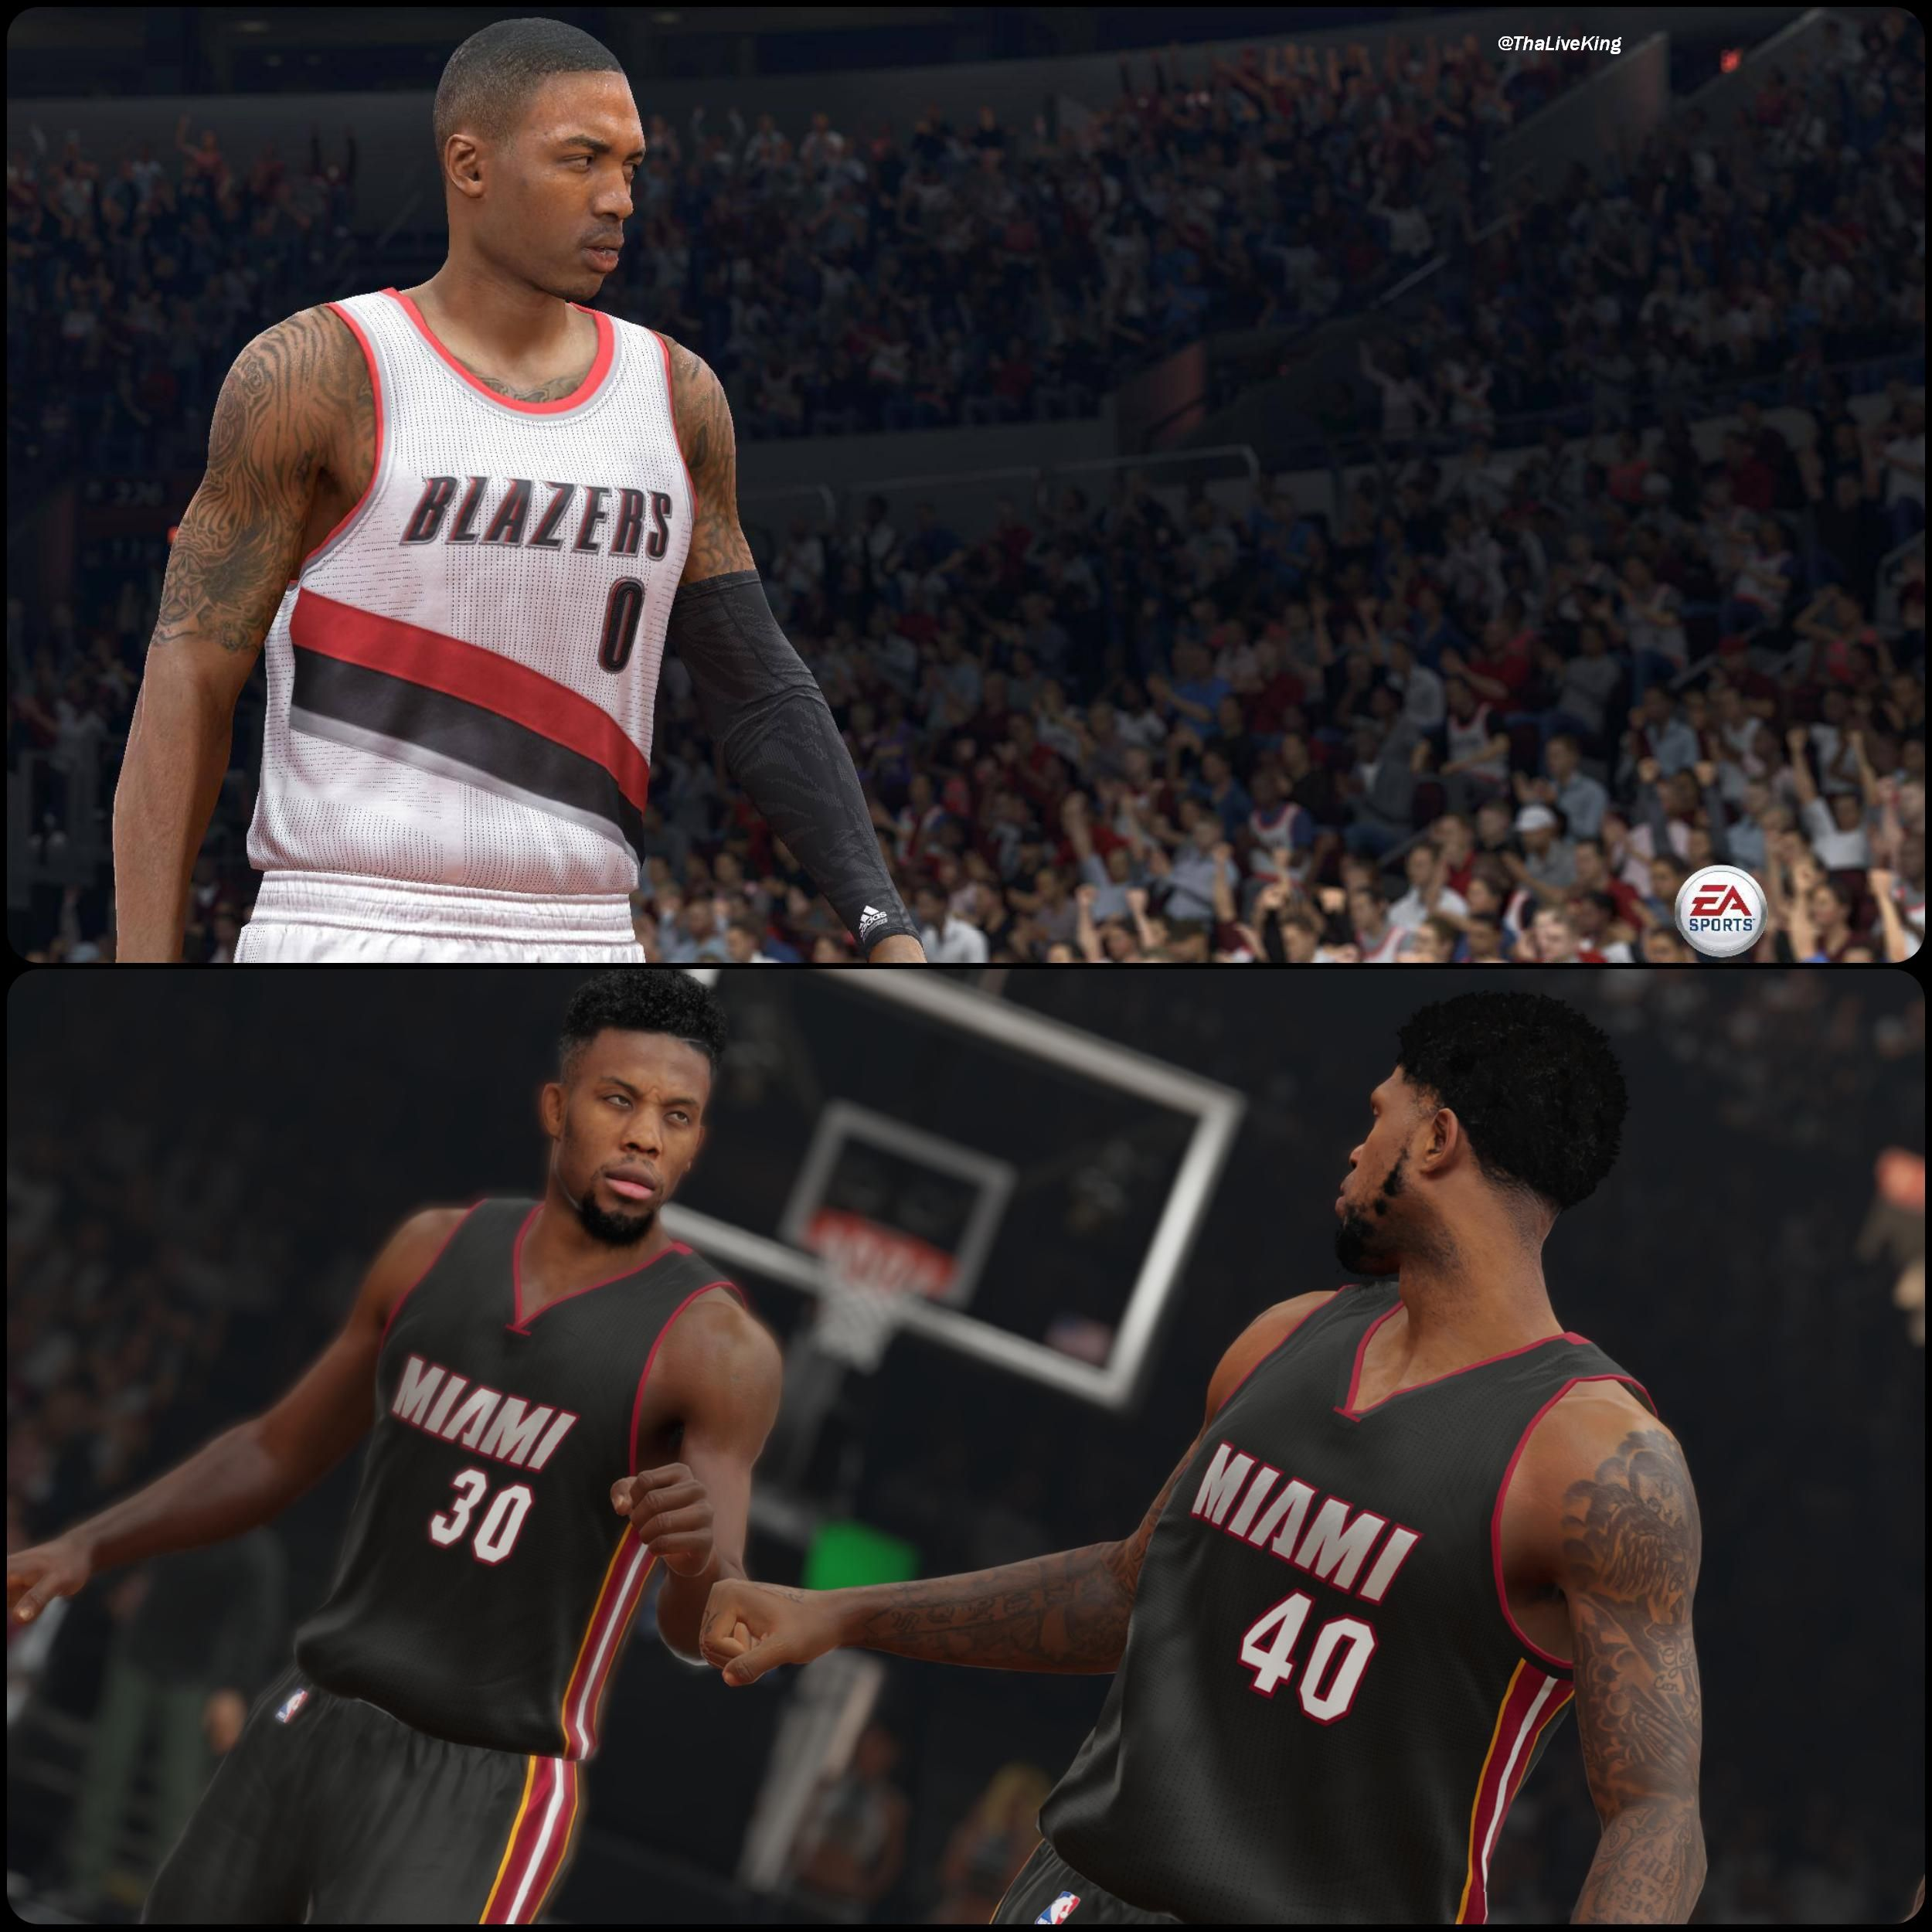 nba live 15 vs nba 2k15 images galleries with a bite. Black Bedroom Furniture Sets. Home Design Ideas